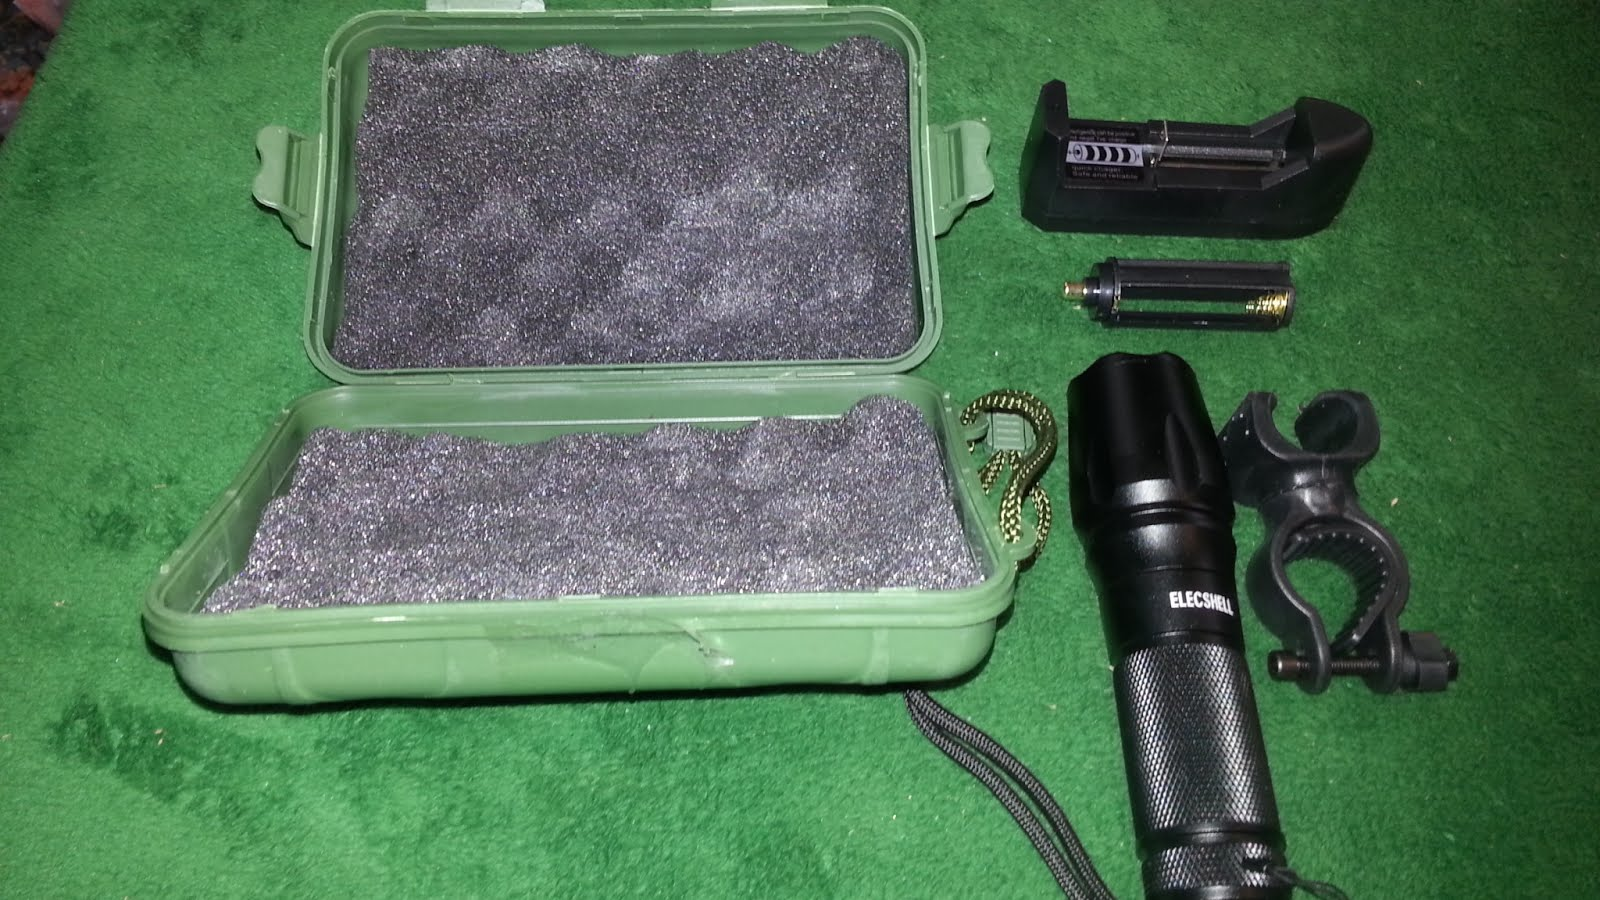 Ledflashlight Led Tactical Flashlight Elecshell Rechargeable 1200lm Single Cell It Came In A Great Case With Battery Charger And Lithium Also Has Aaa Adapter For 3 Batteries Seems Brighter Than My